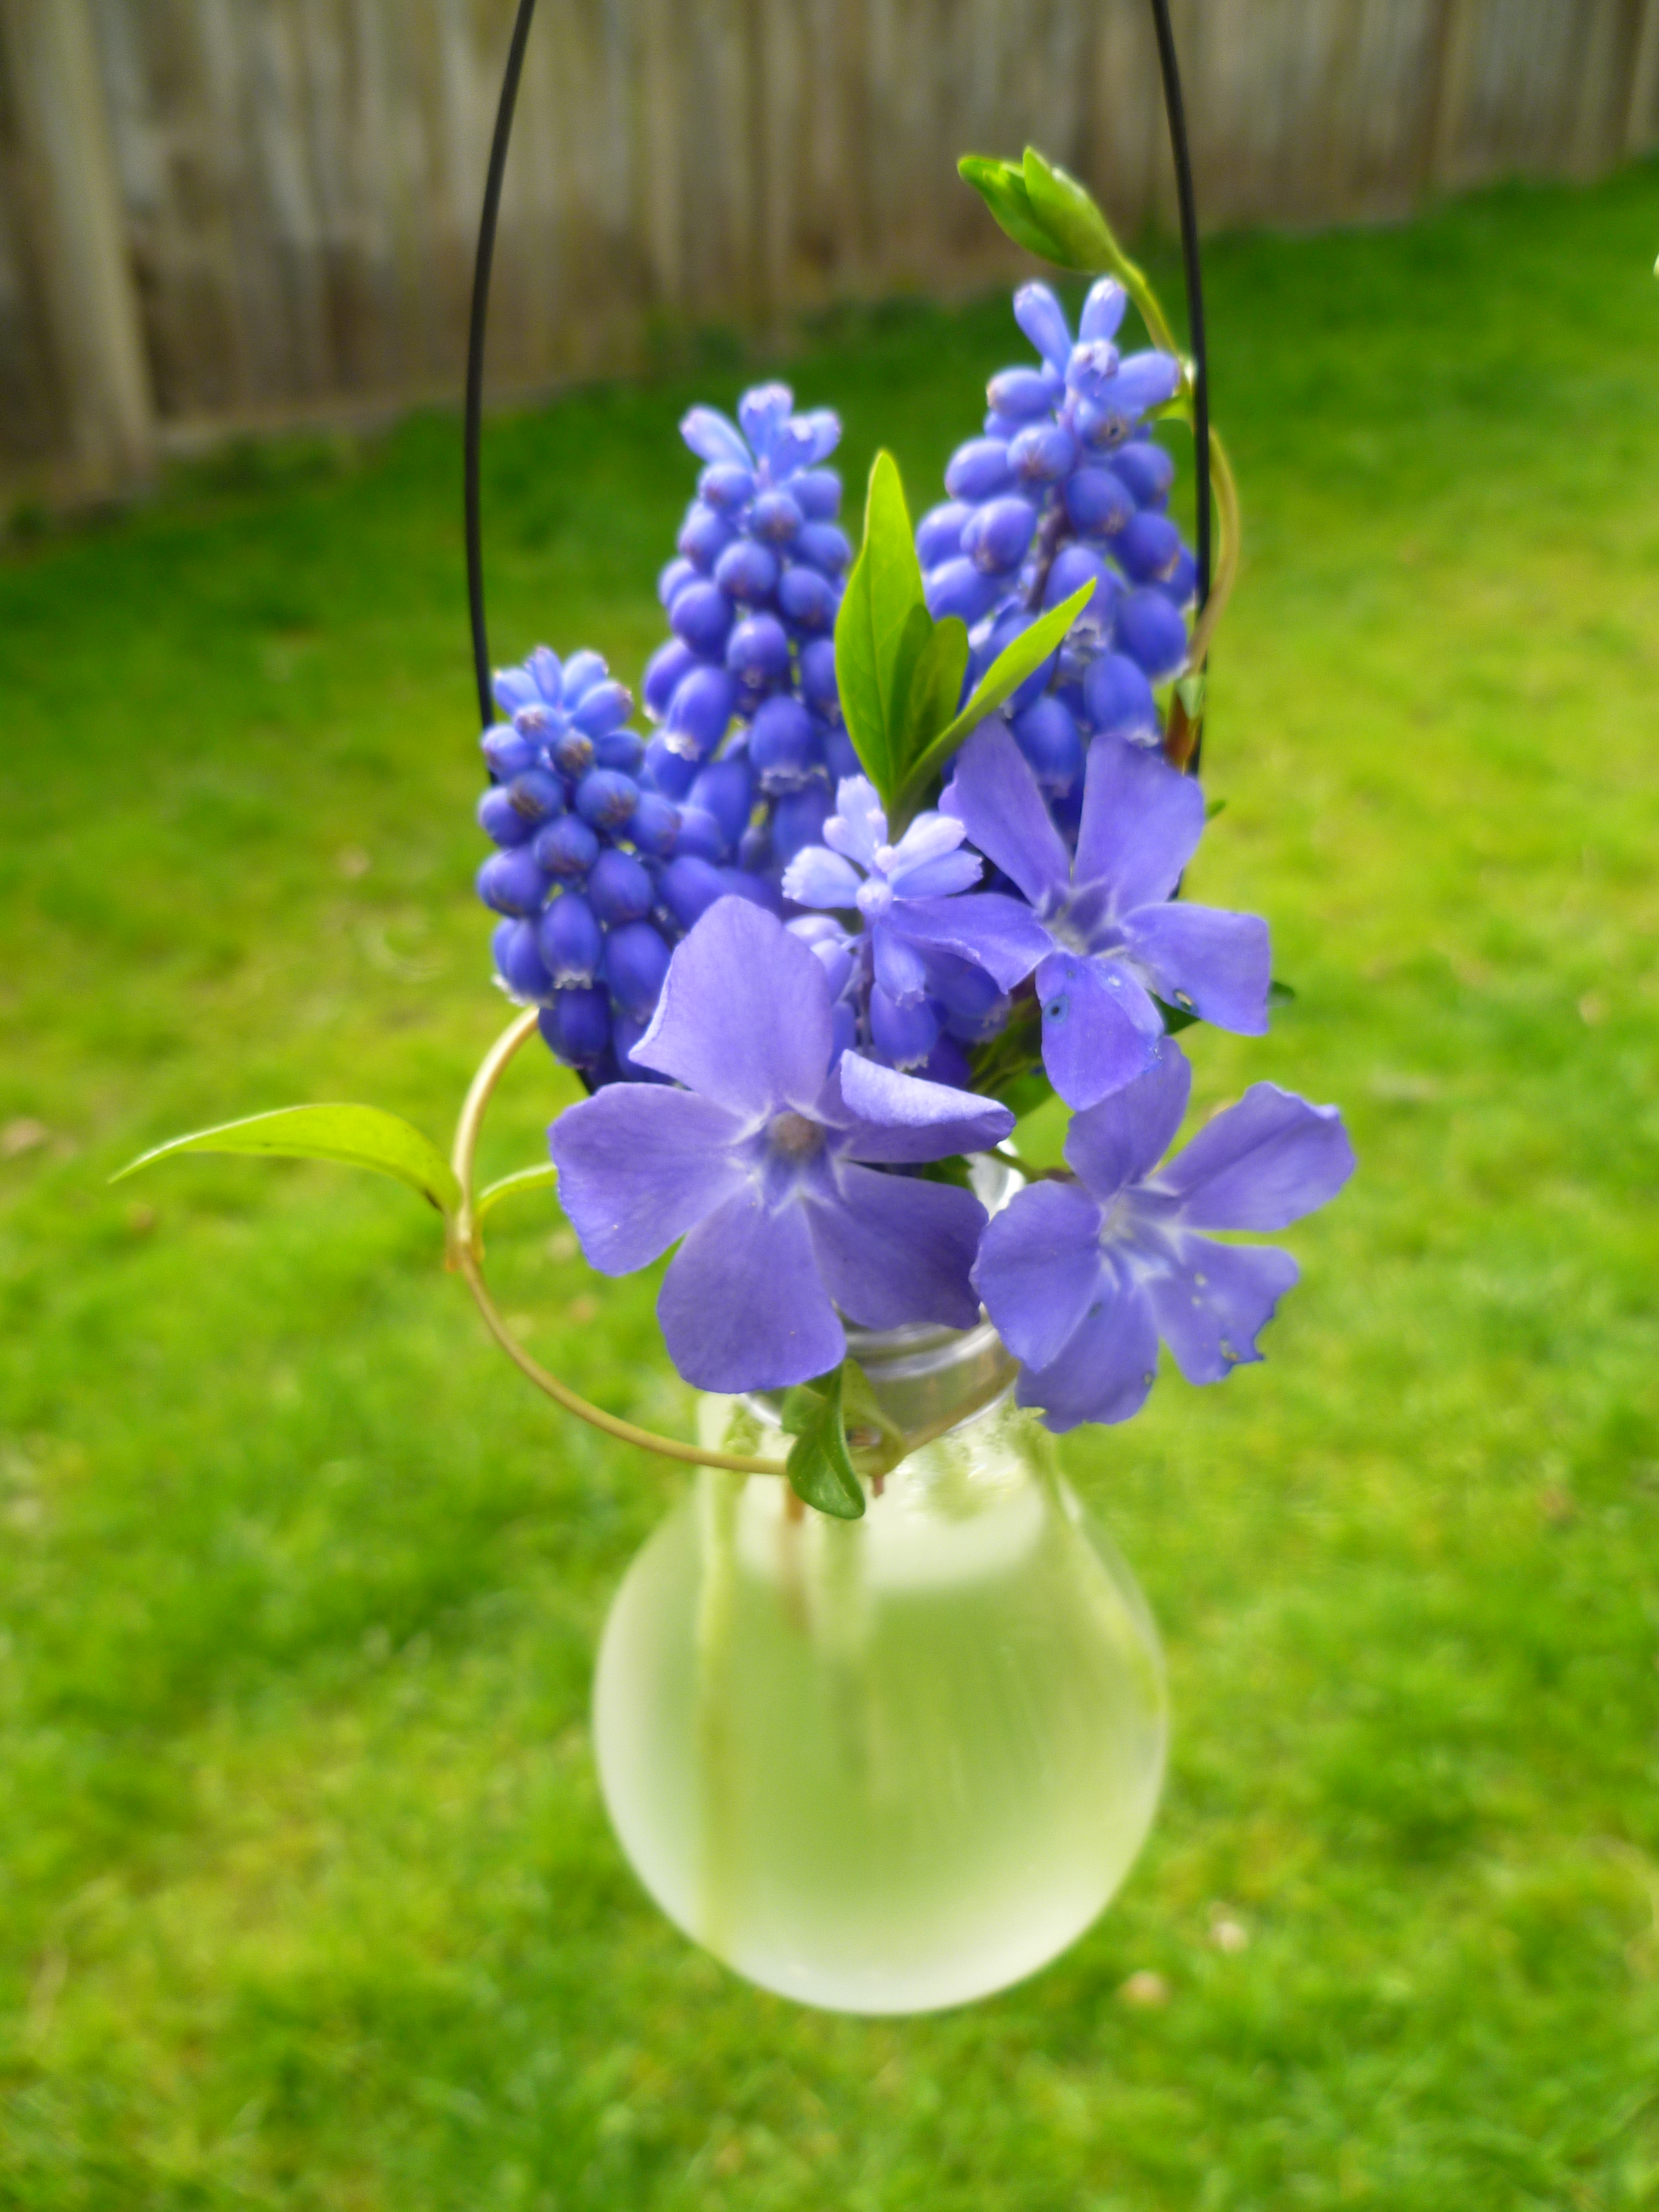 Diy Busters Incandescent Light Bulb Vase Worth It Trash Backwards Blog